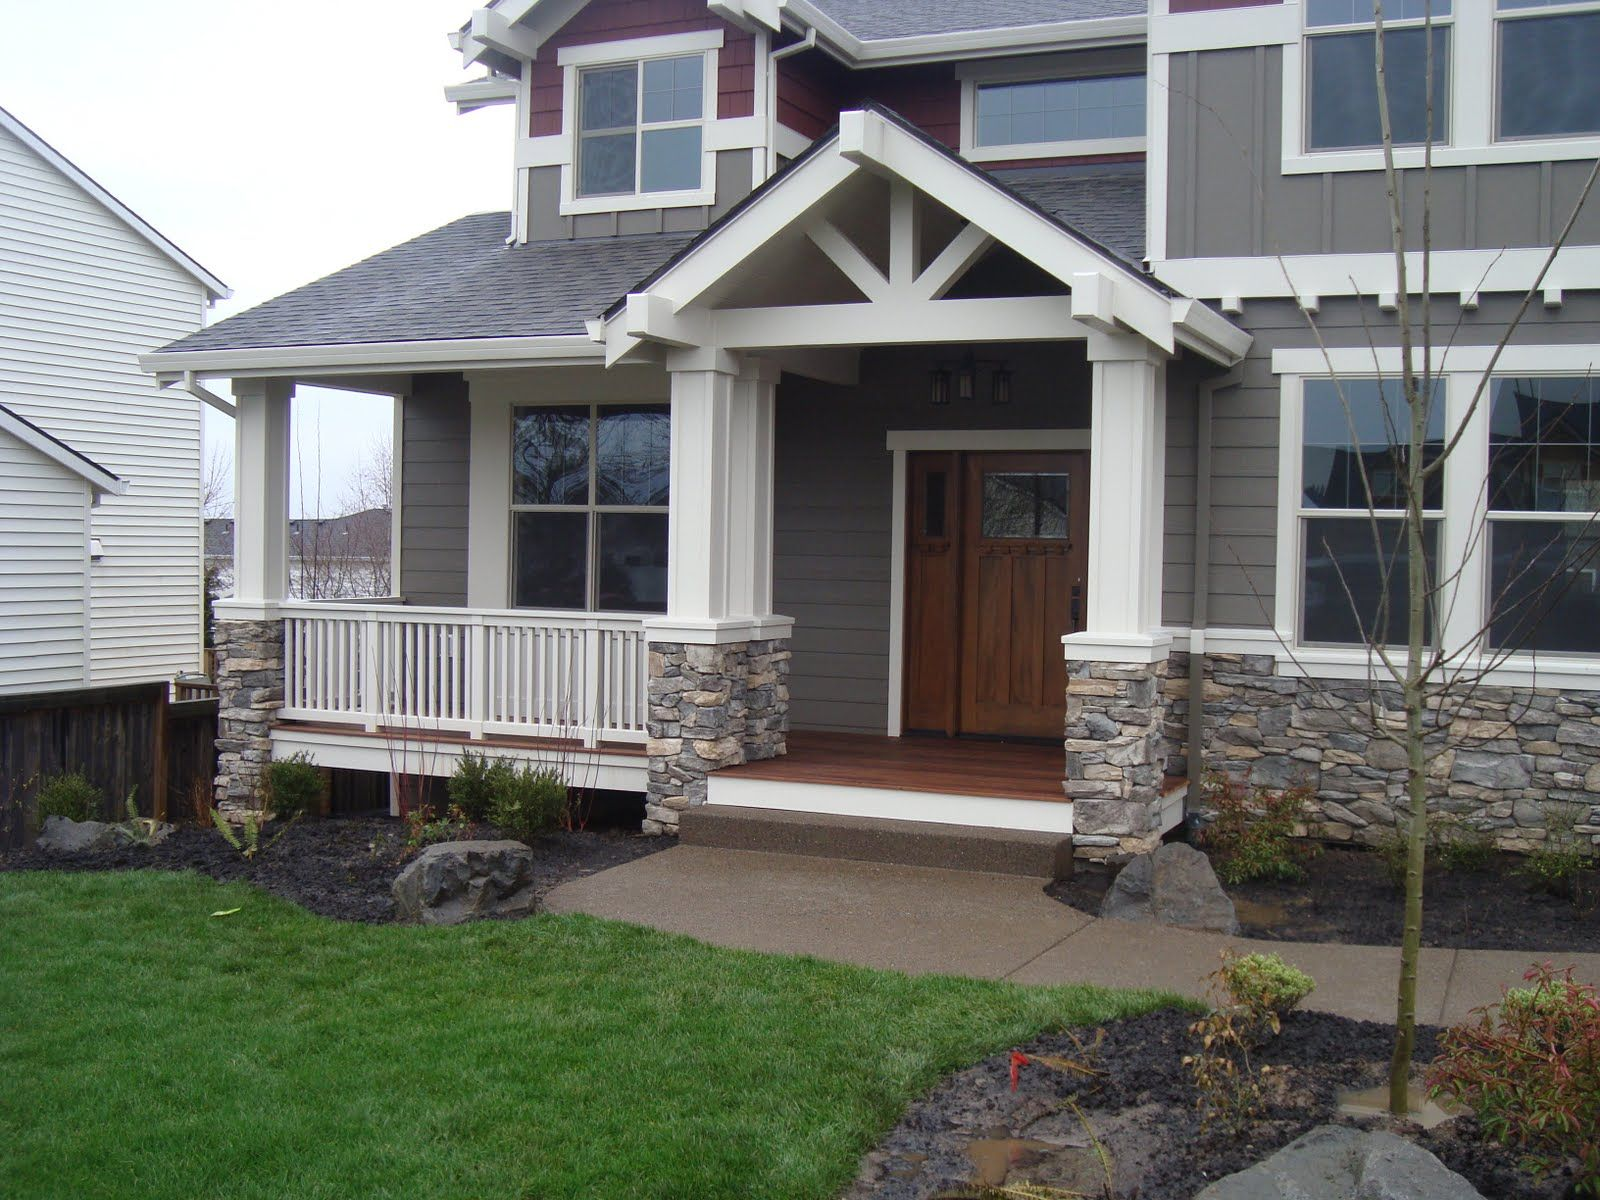 Exterior Stone Veneer Classy Garage Exterior Rock Vaneer Siding  Halgren Construction  Home Decorating Inspiration